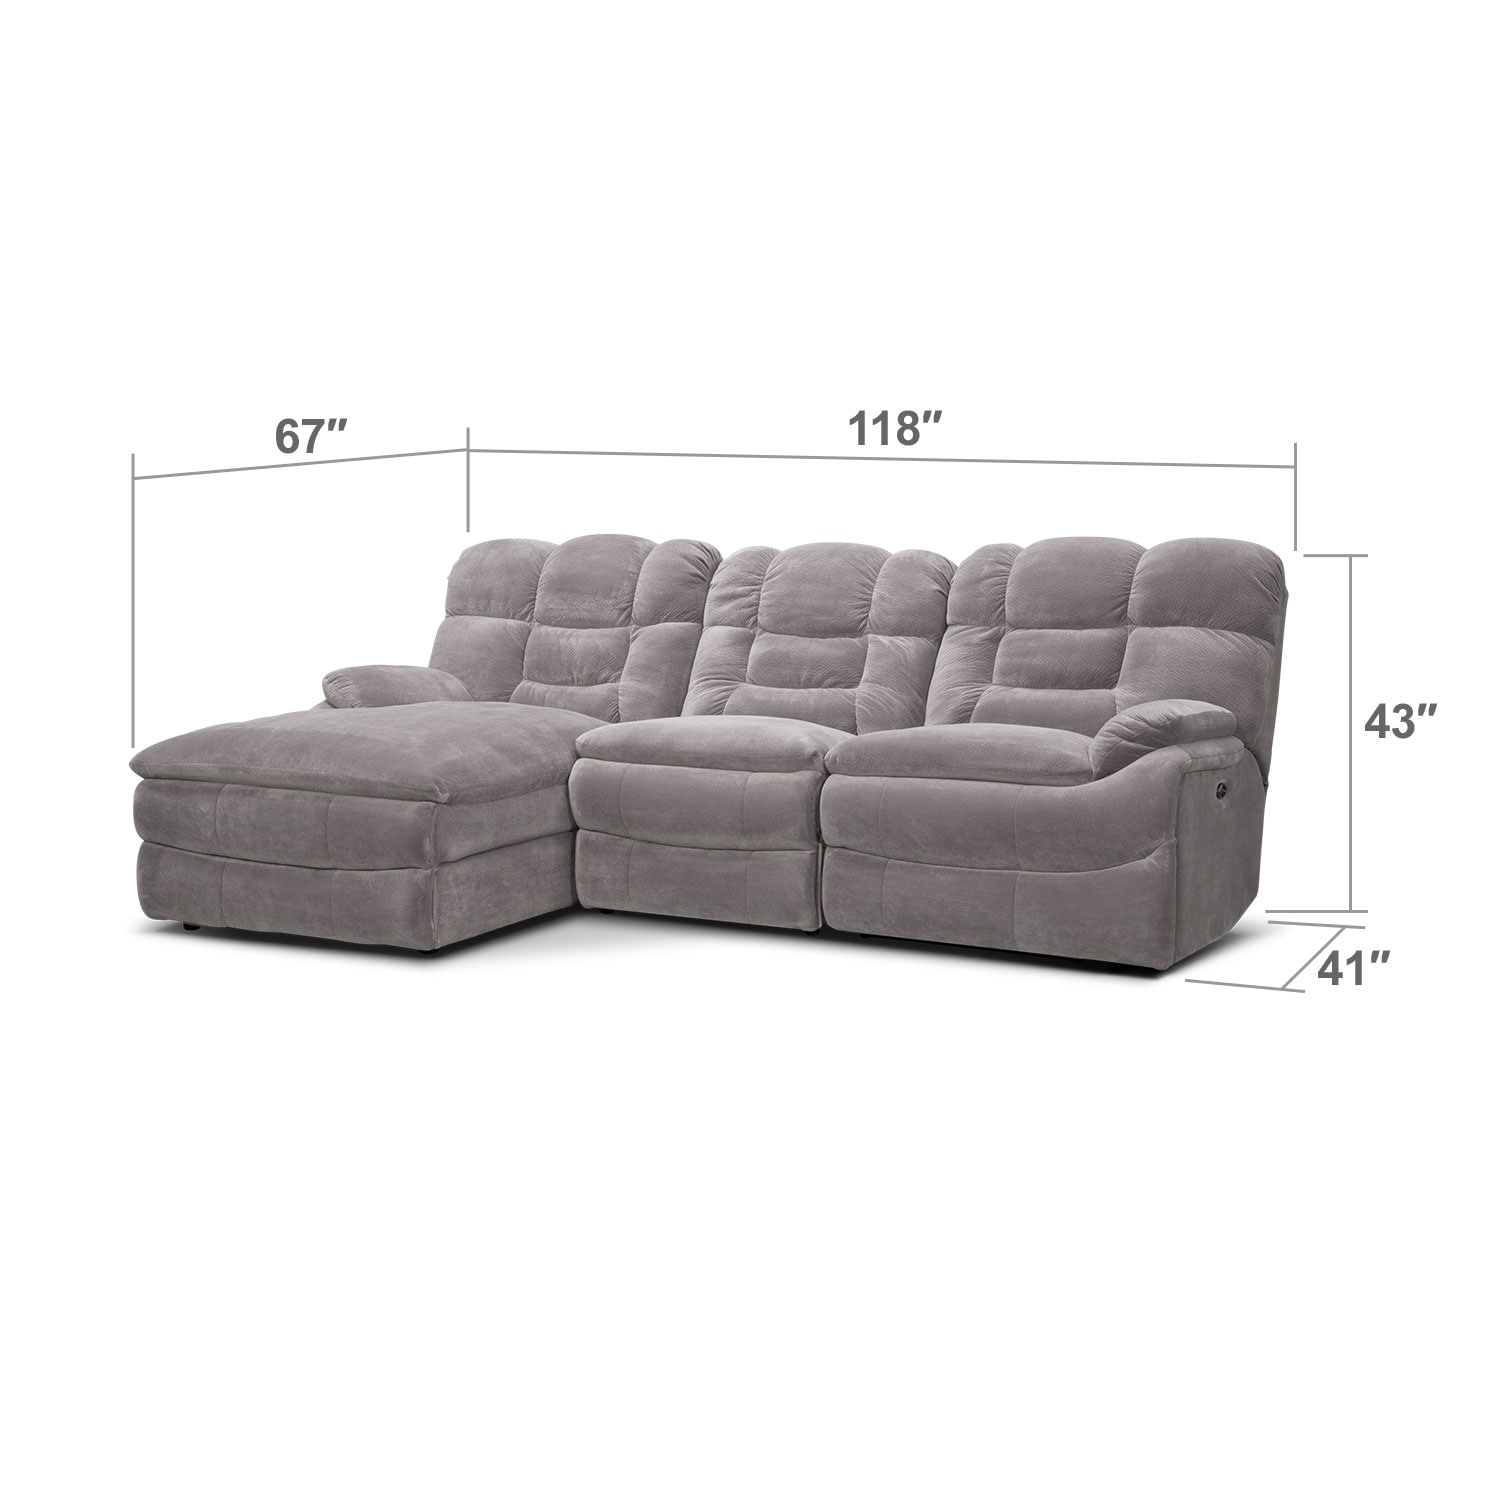 Living Room Furniture - Big Softie 3-Piece Power Reclining Sectional with Left-Facing Chaise - Gray